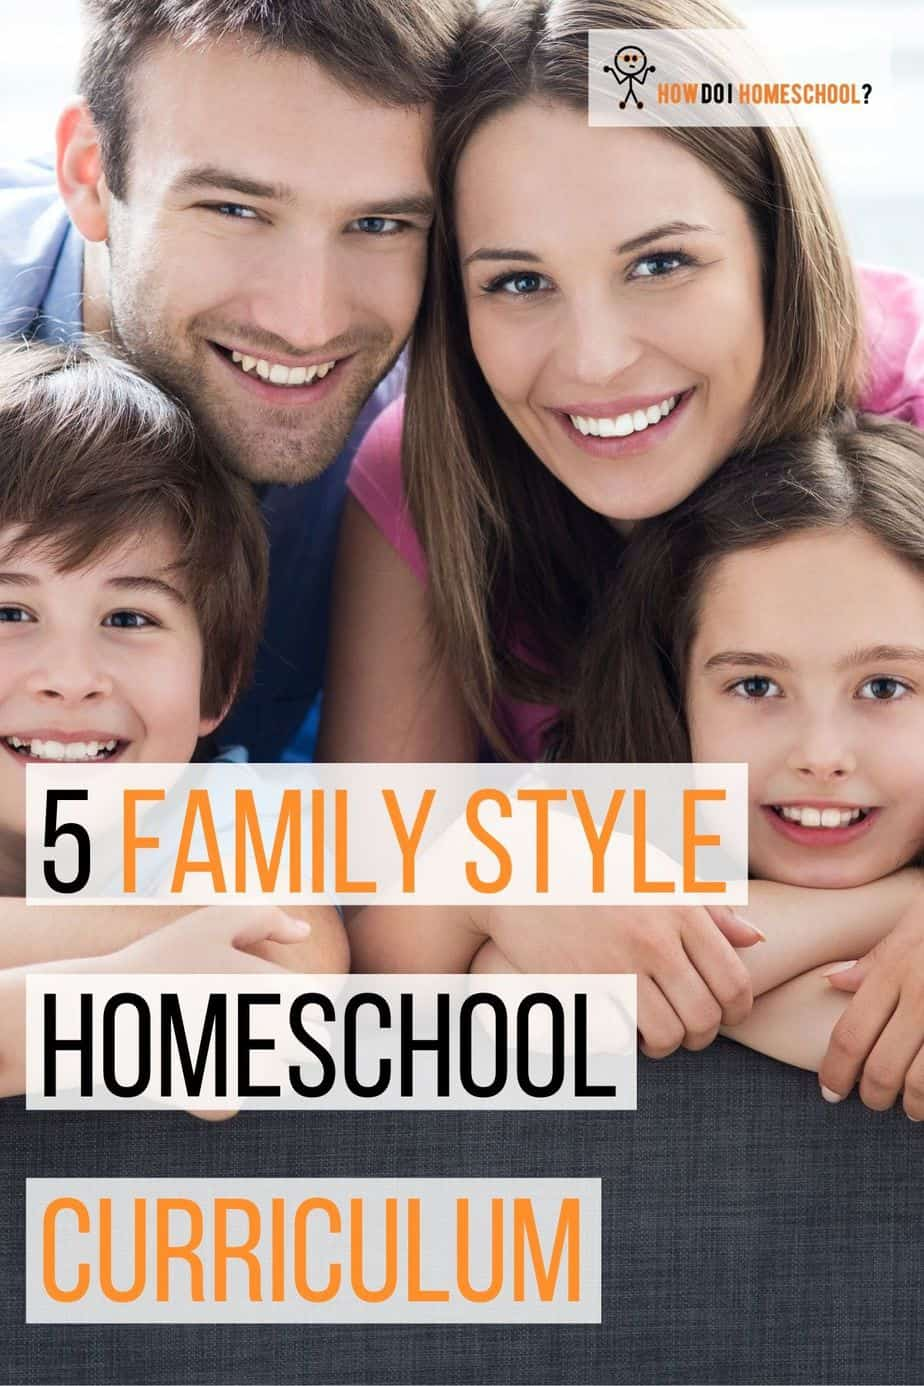 If you have a large family, you have to check out these great homeschooling curriculum options. Including Schoolhouse teachers KONOS, and Five-in-a-row, these won't dissapoint. #familystylehomeschool